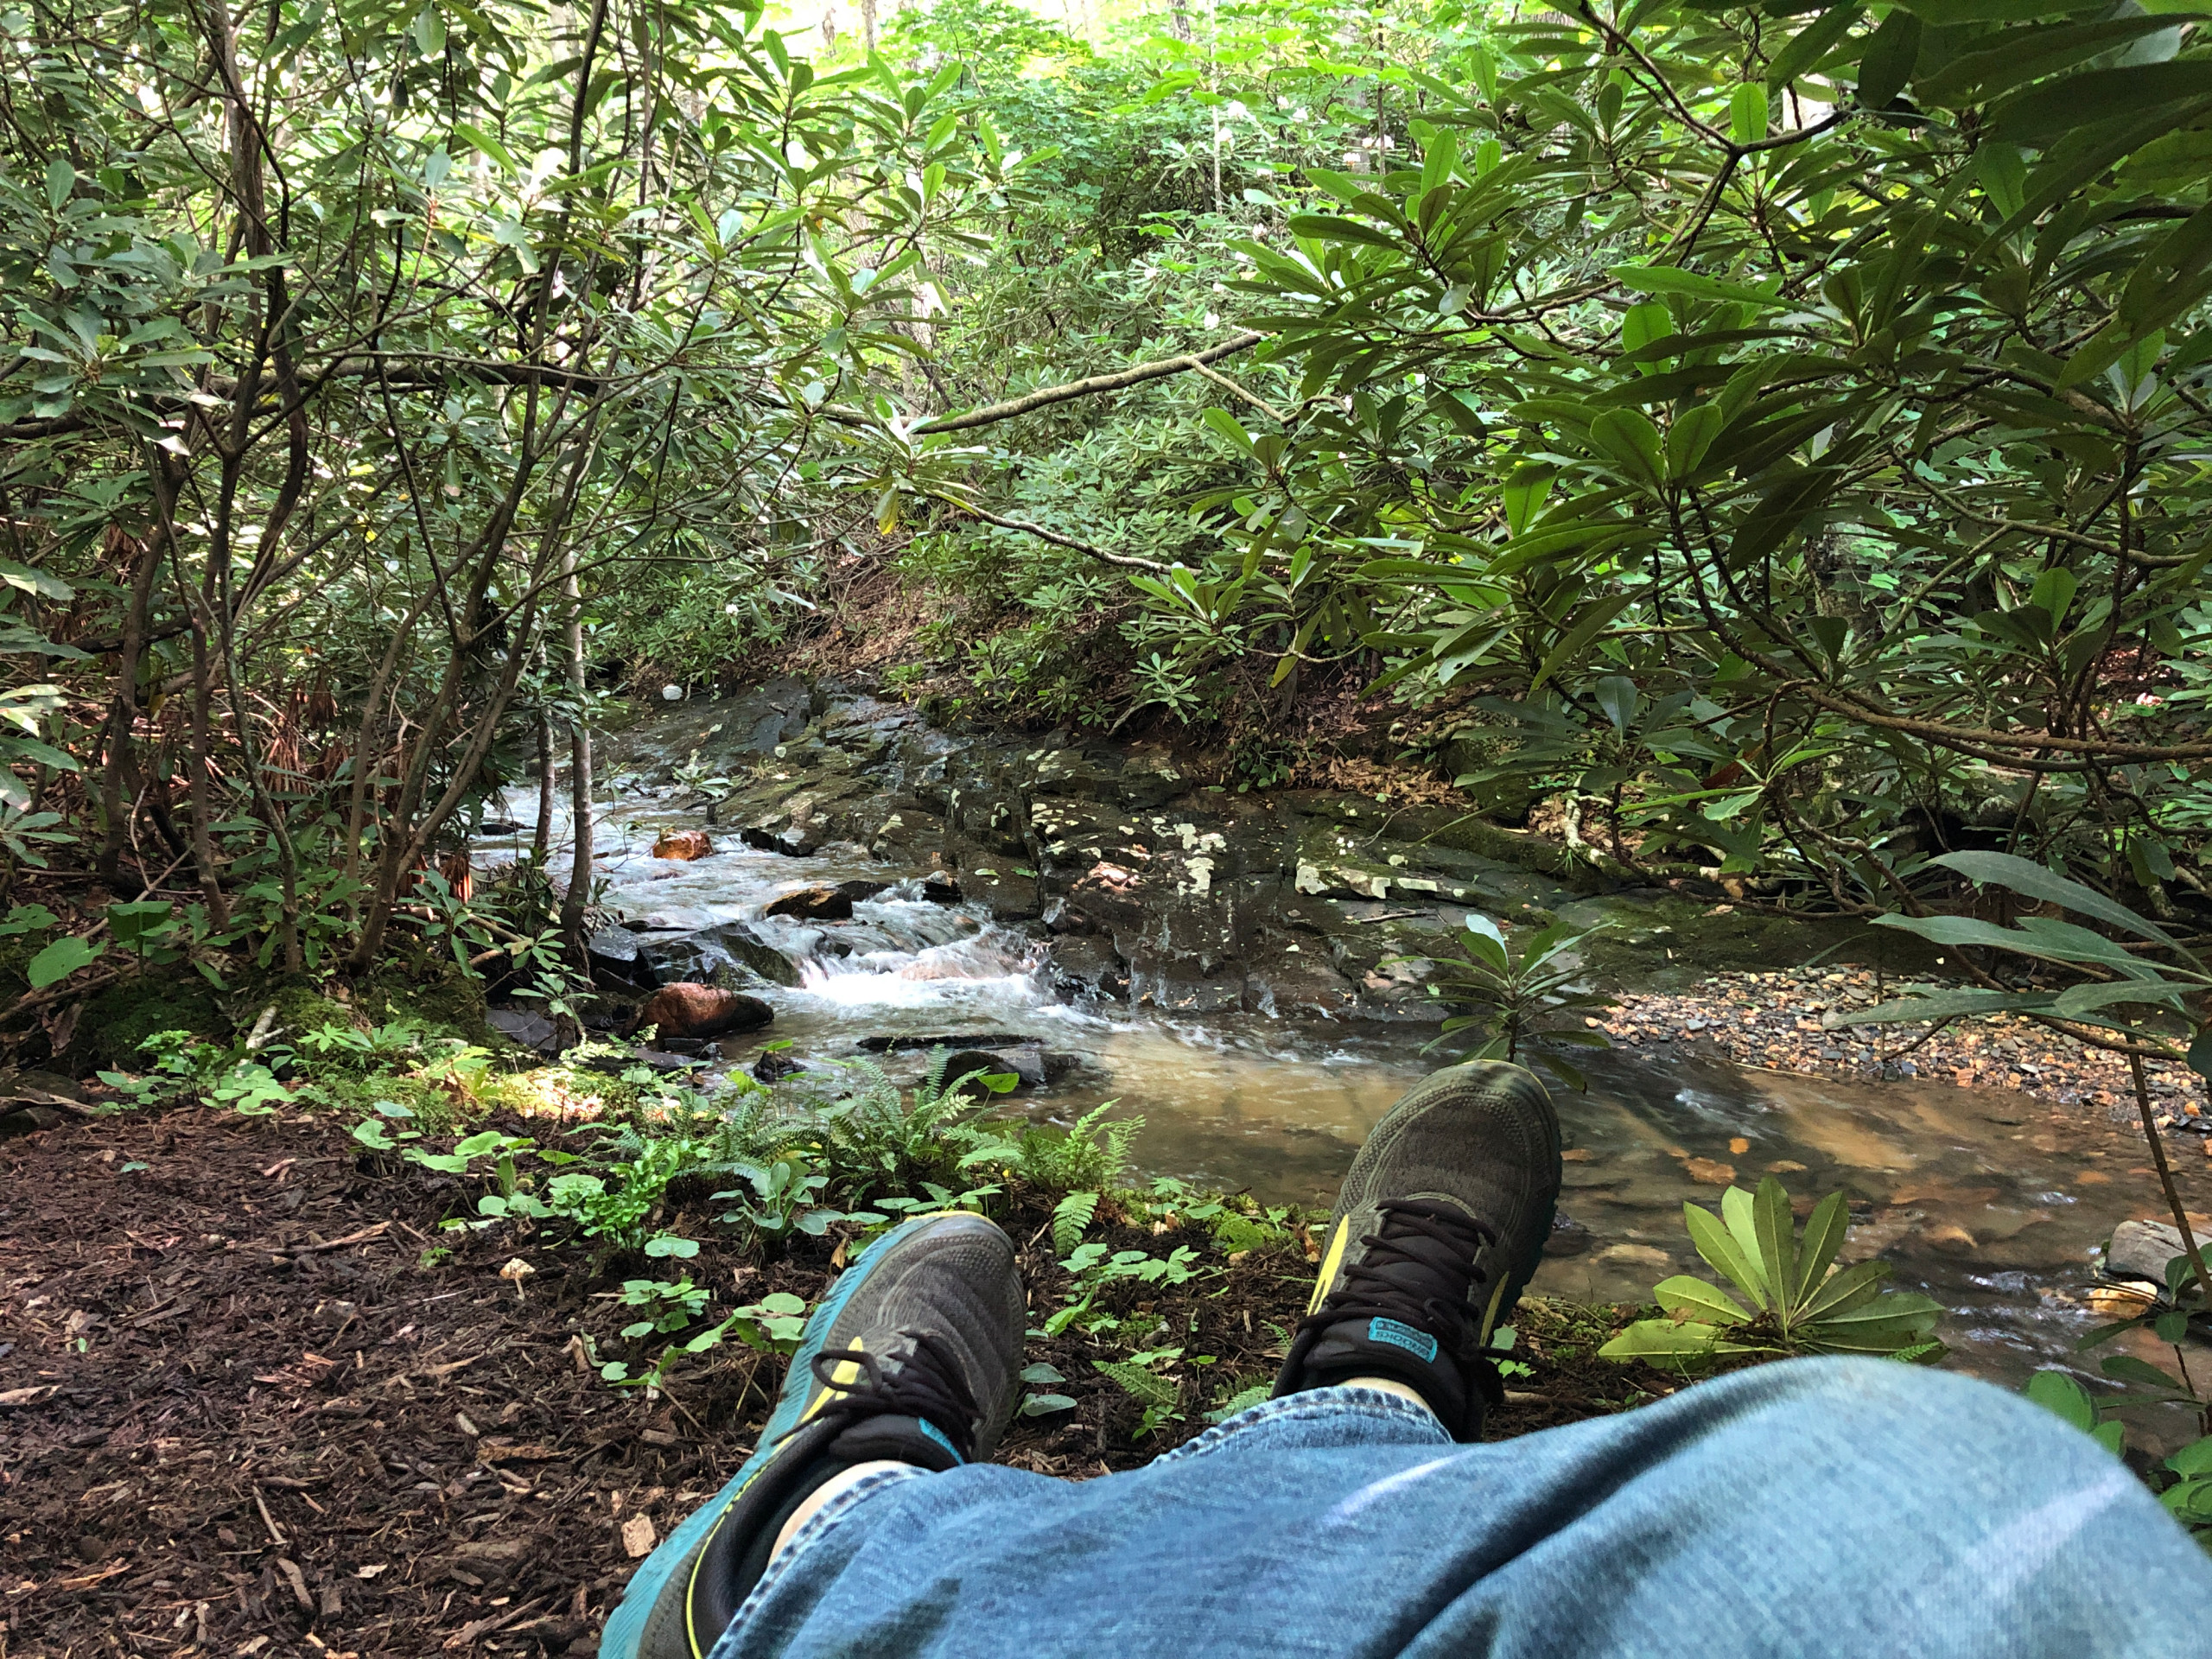 Relaxing by the rapids.